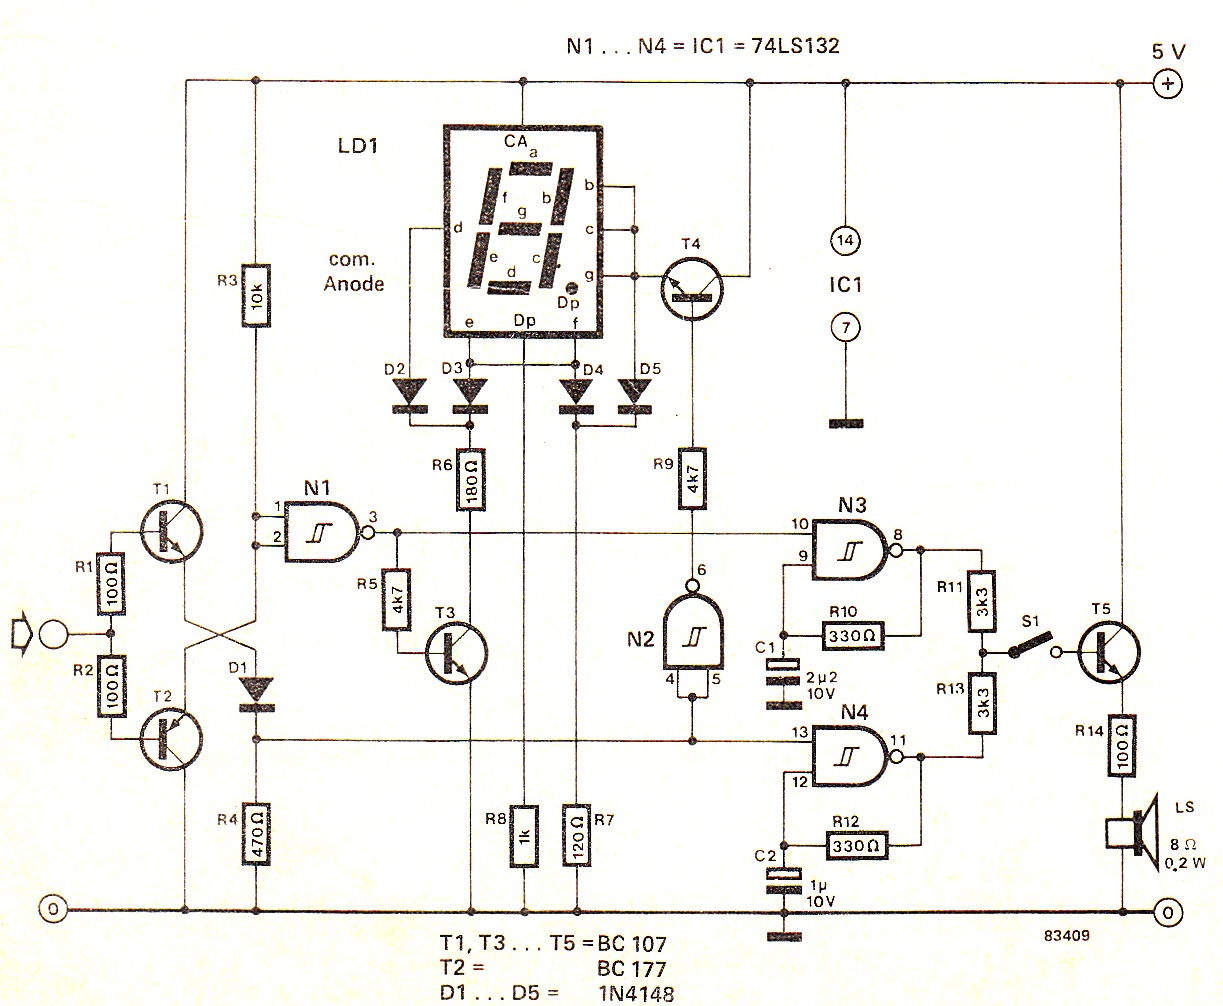 digital%2Bhi%2Blo%2Blogic%2Btester%2Bcircuit%2Bdiagram logic wiring diagram automated logic wiring diagram \u2022 wiring square d motor logic wiring diagram at soozxer.org